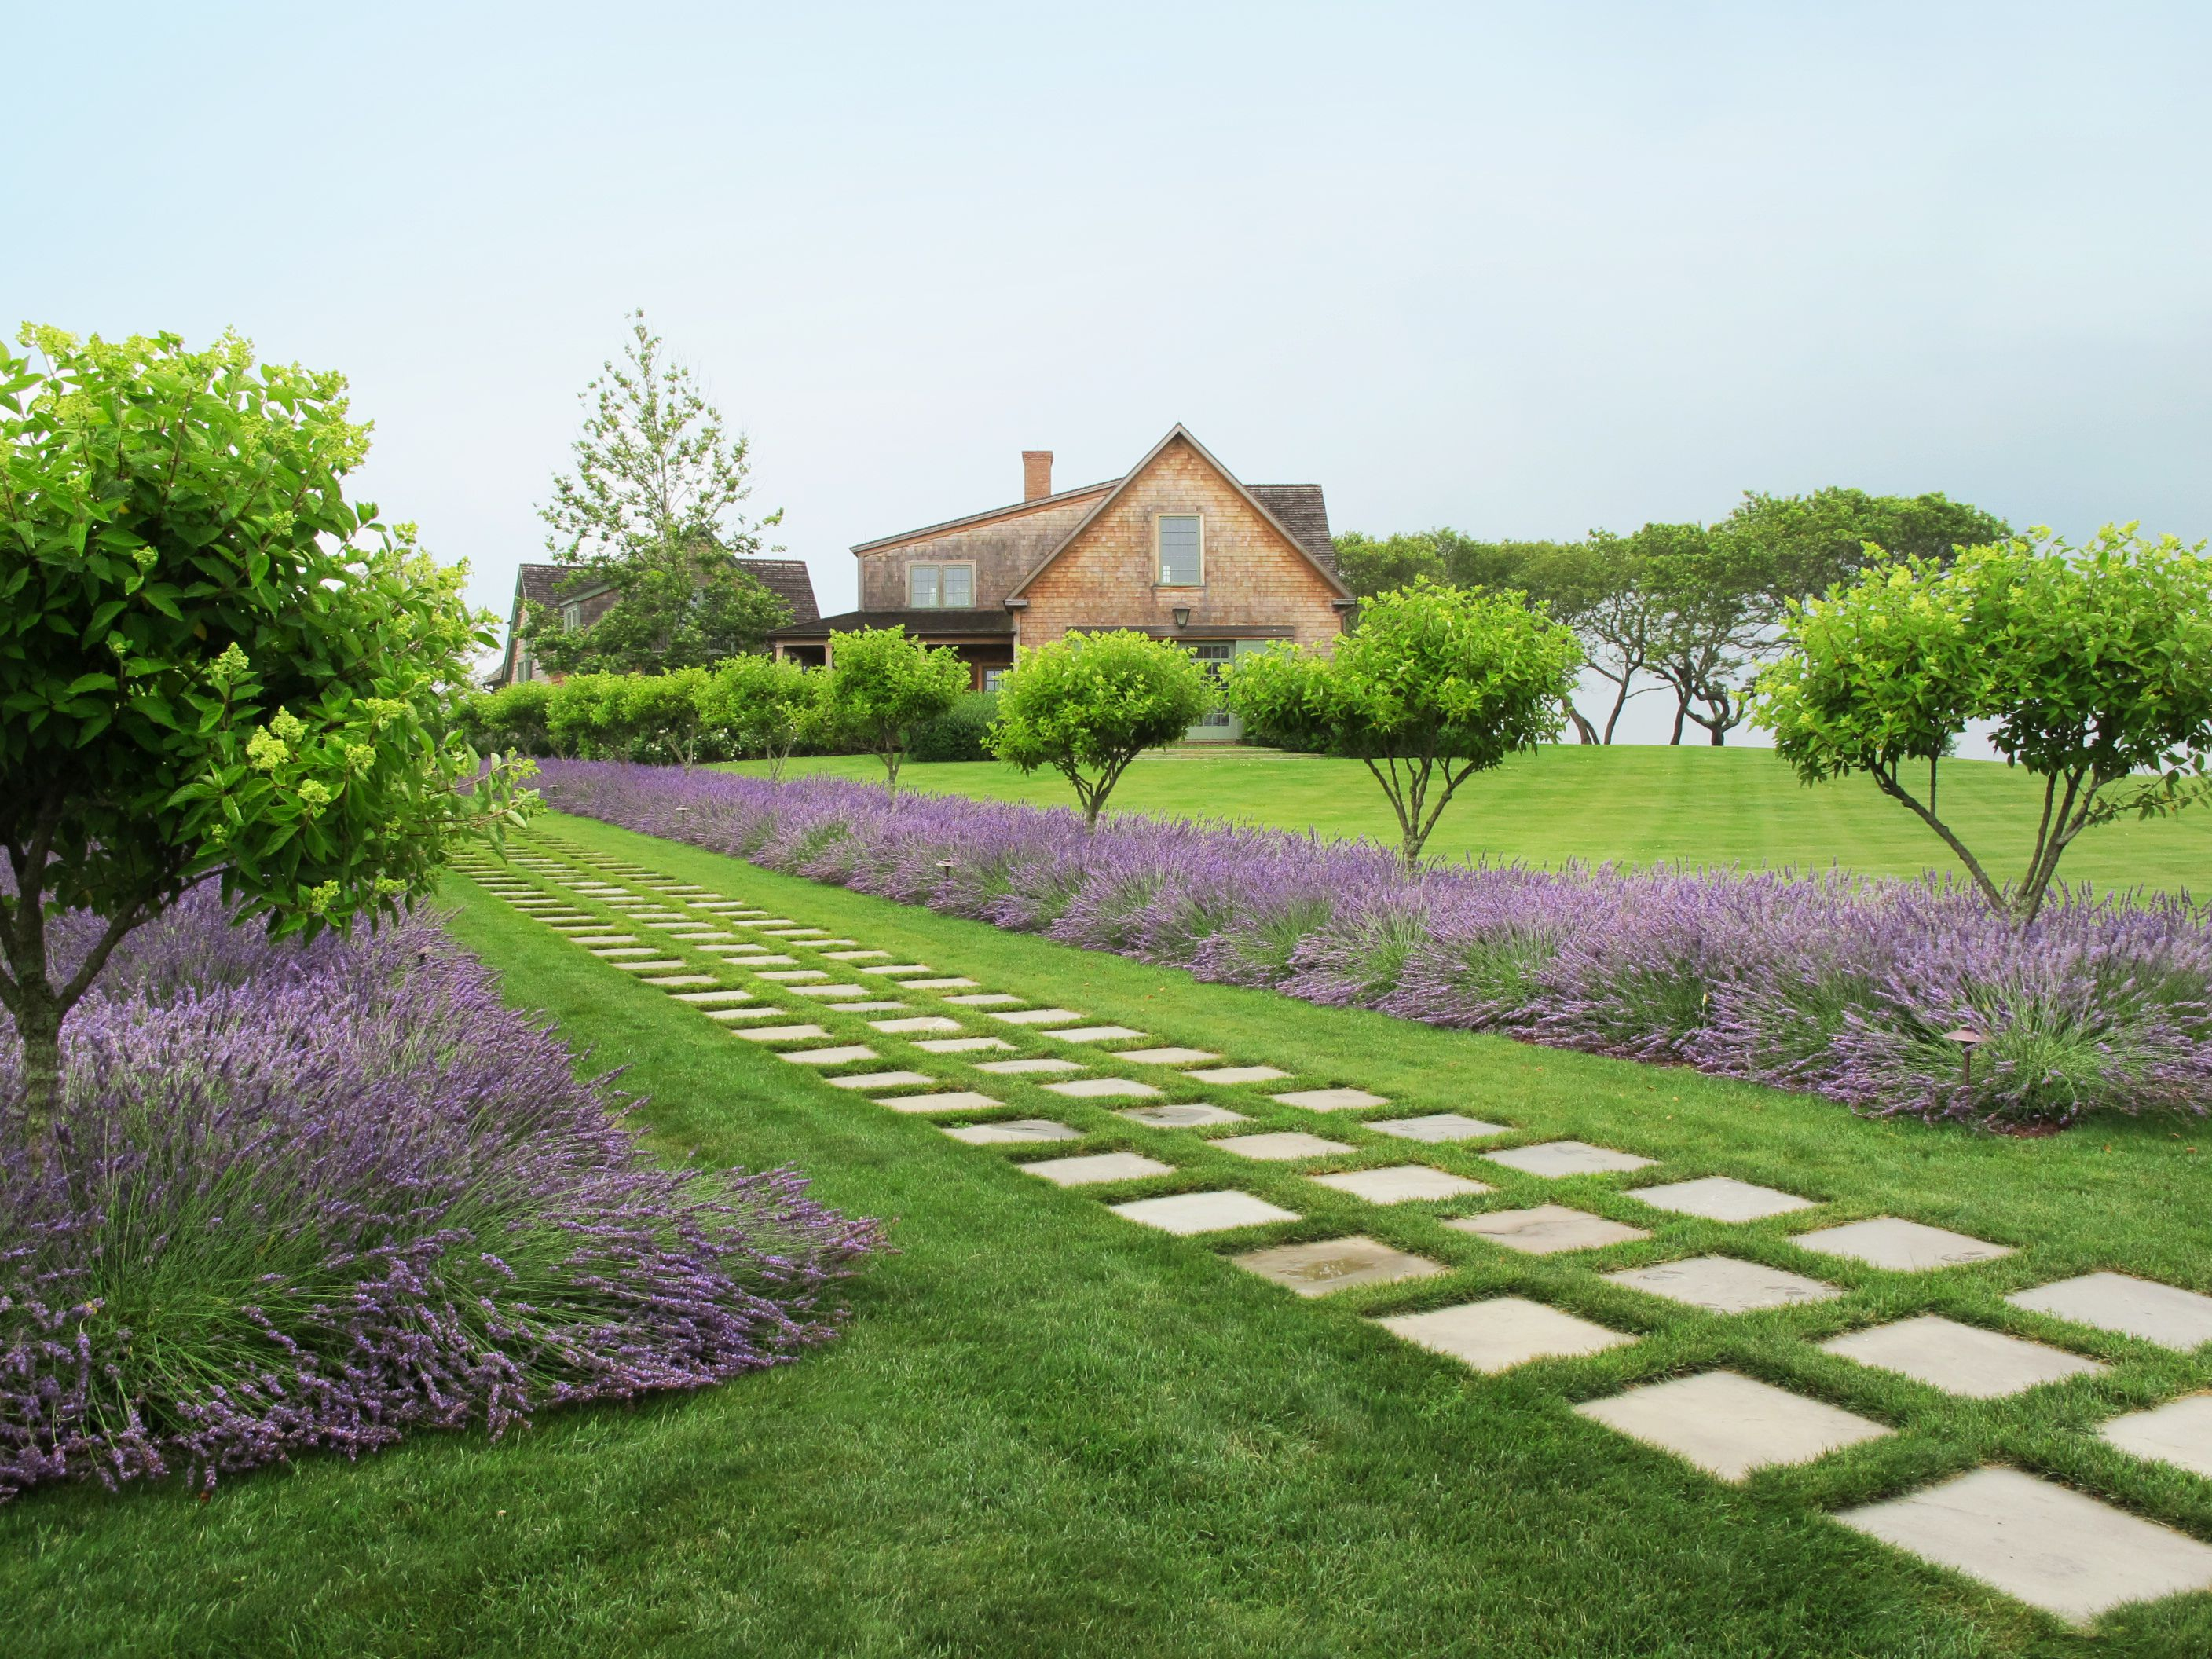 53 Beautiful Landscaping Ideas Best Backyard Landscape Design Tips intended for Landscaping A Large Backyard